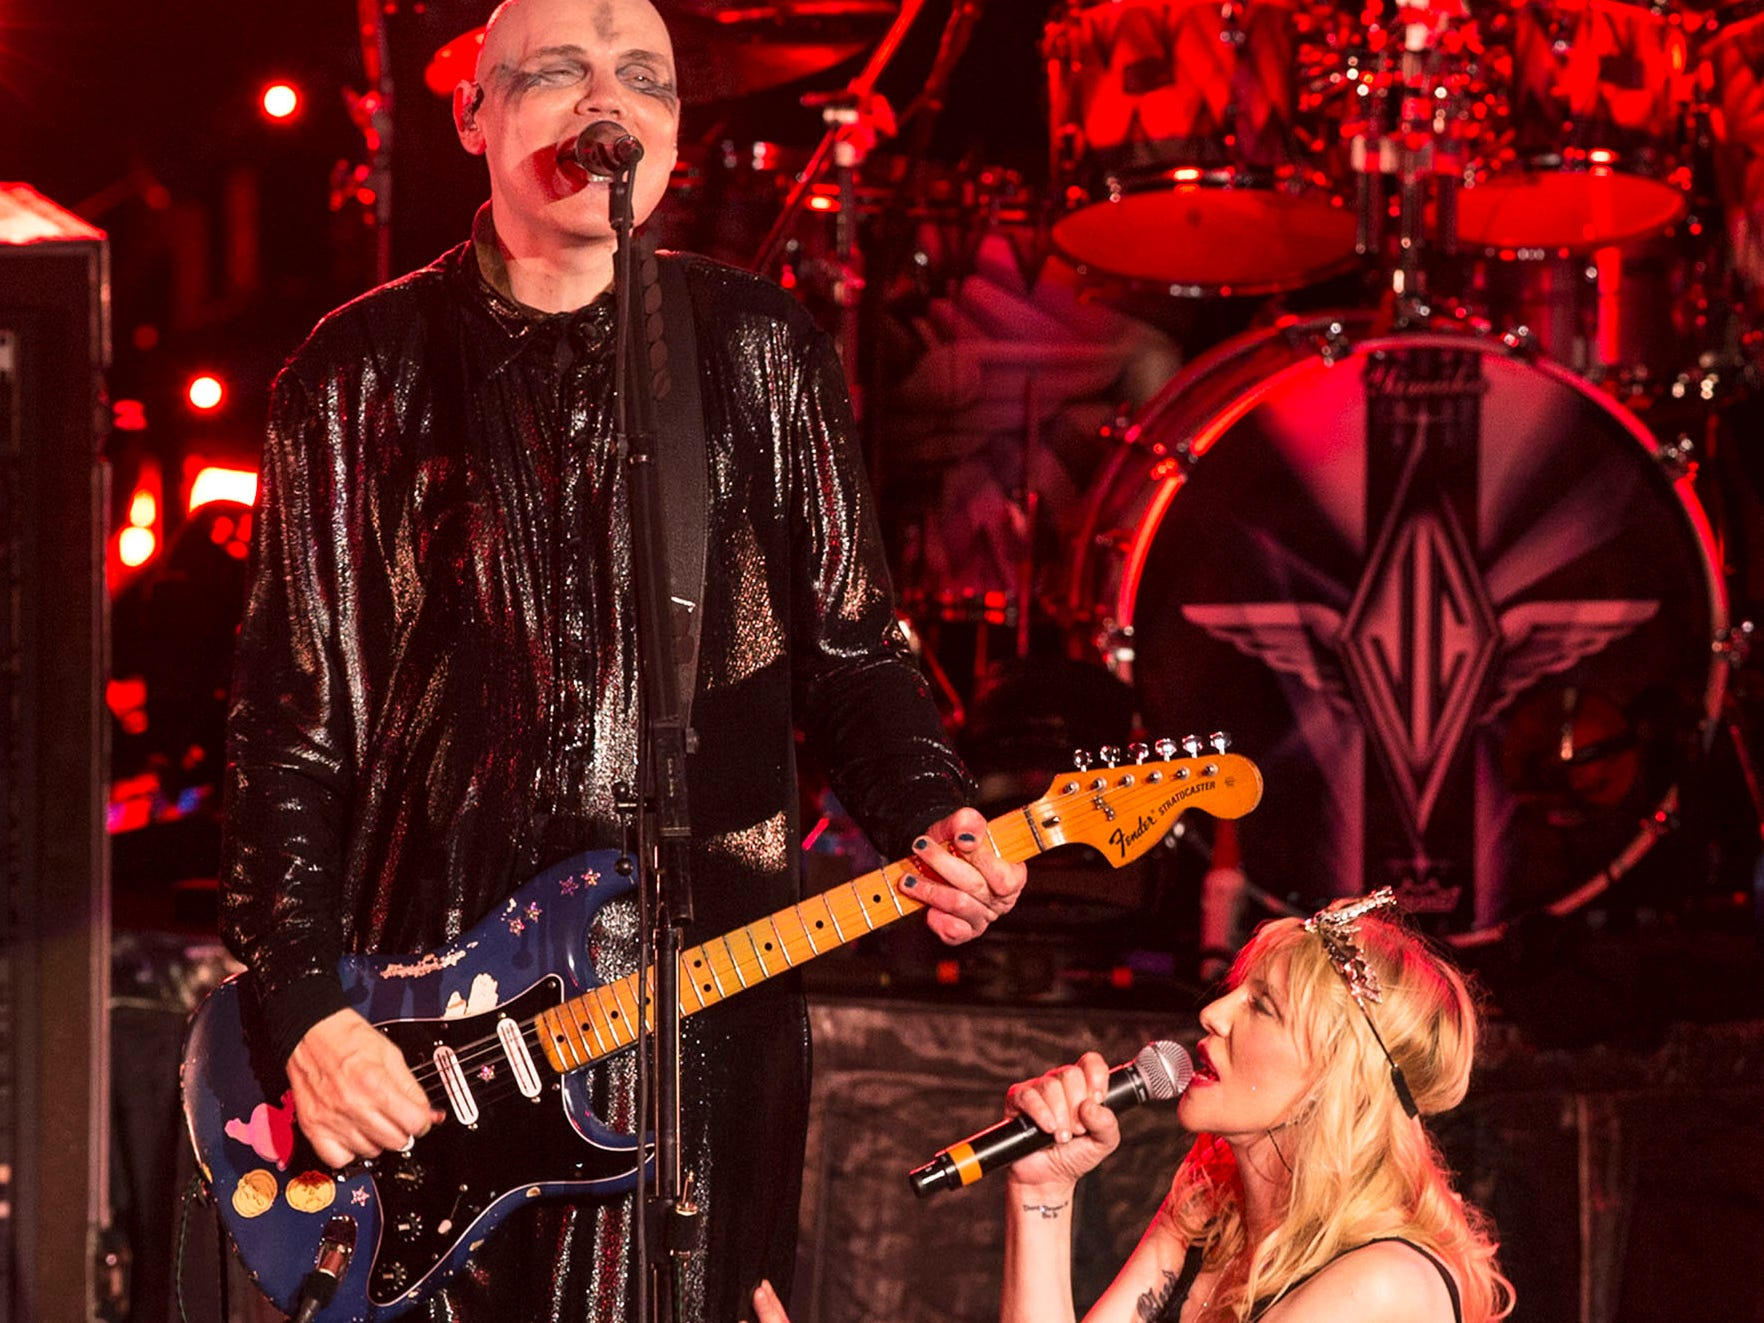 Courtney Love joins Billy Corgan and the rest of the Smashing Pumpkins. The Smashing Pumpkins perform their 30th anniversary concert at PNC Arts Center with a number of special guests for the occasion. 